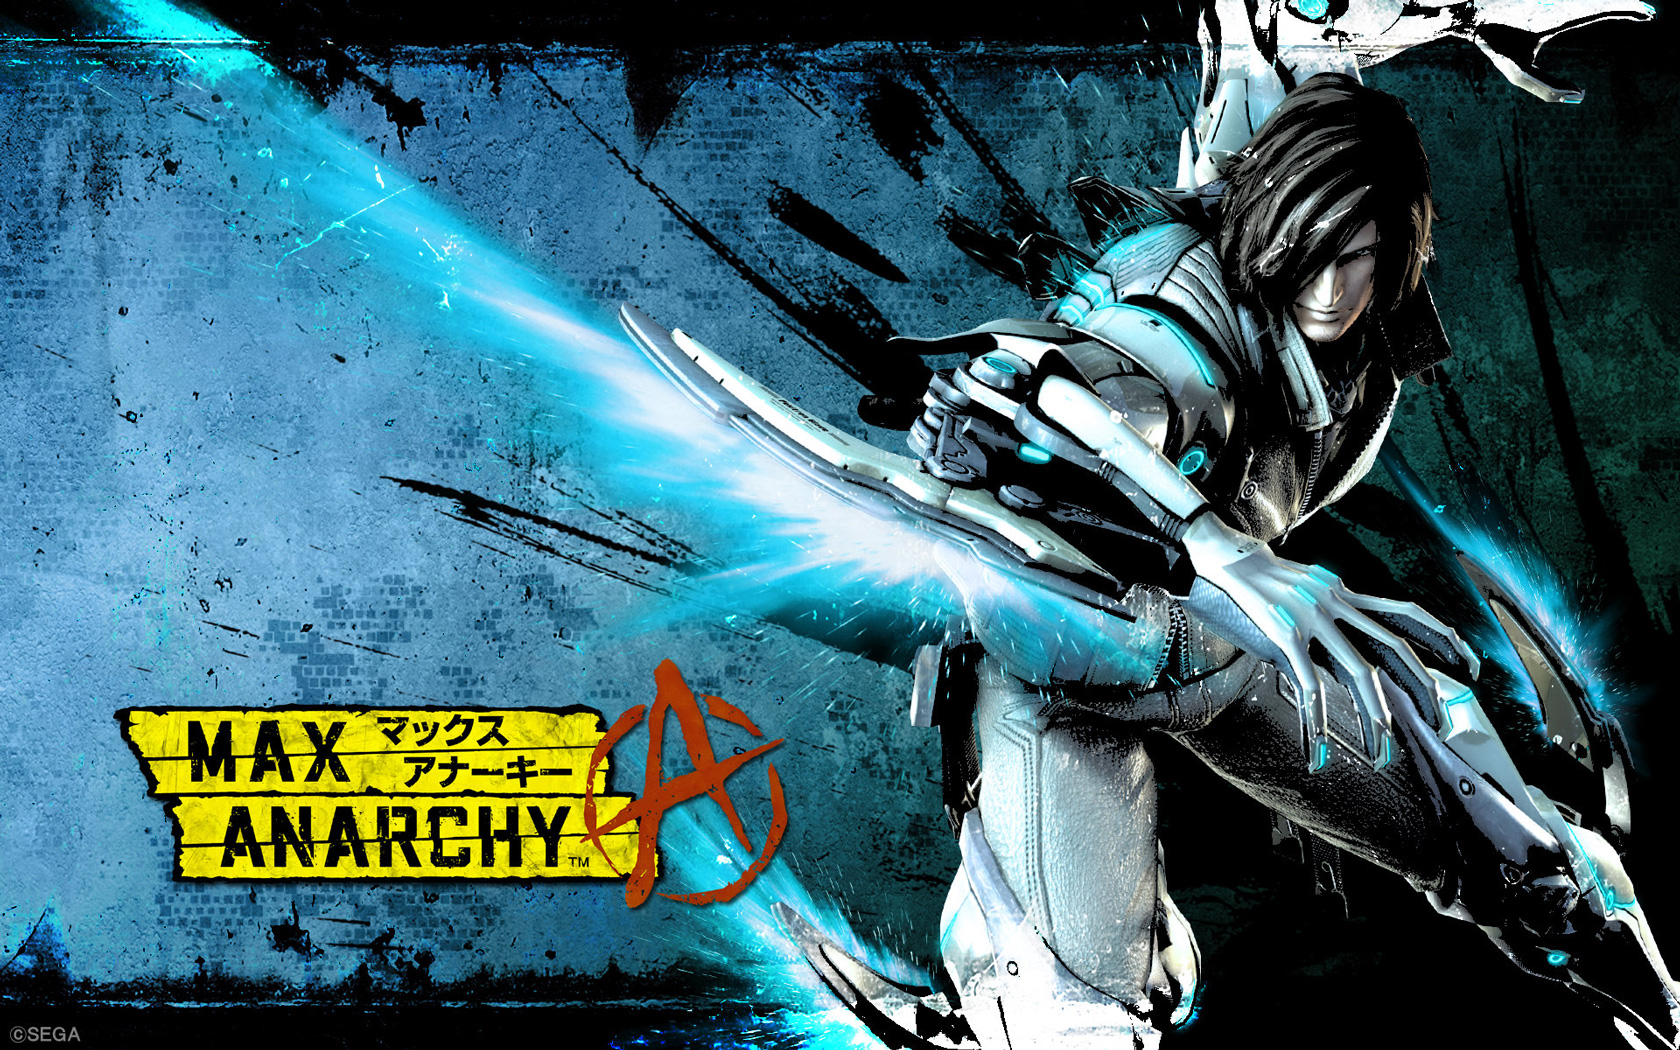 Free Anarchy Reigns Wallpaper in 1680x1050